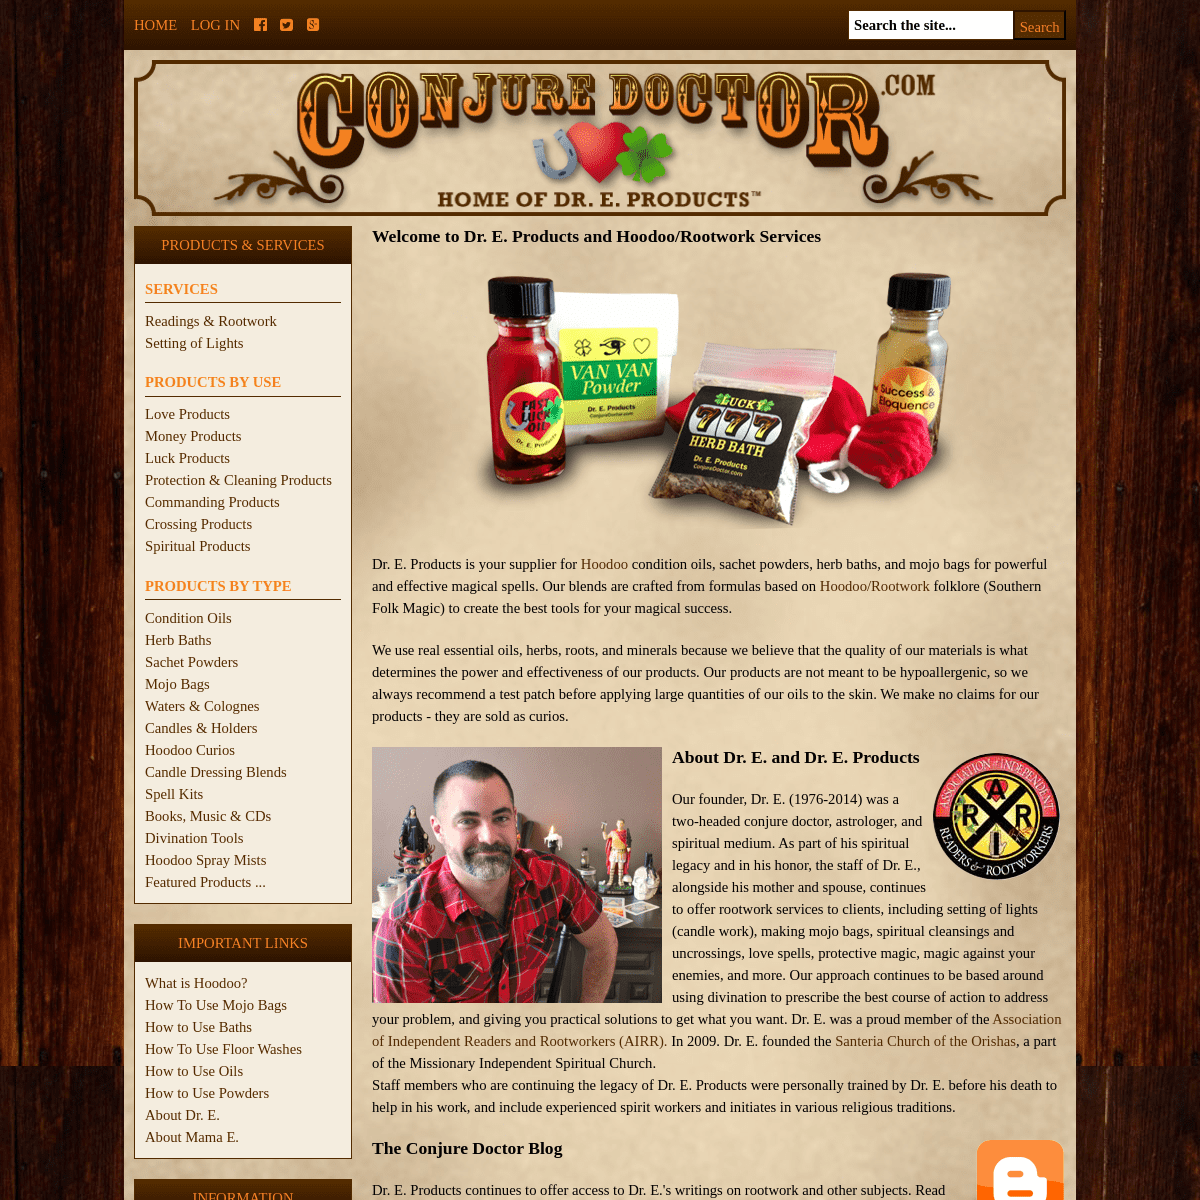 ConjureDoctor.com - Home of Dr. E. Hoodoo Products and Magical Services, Get What You Want!